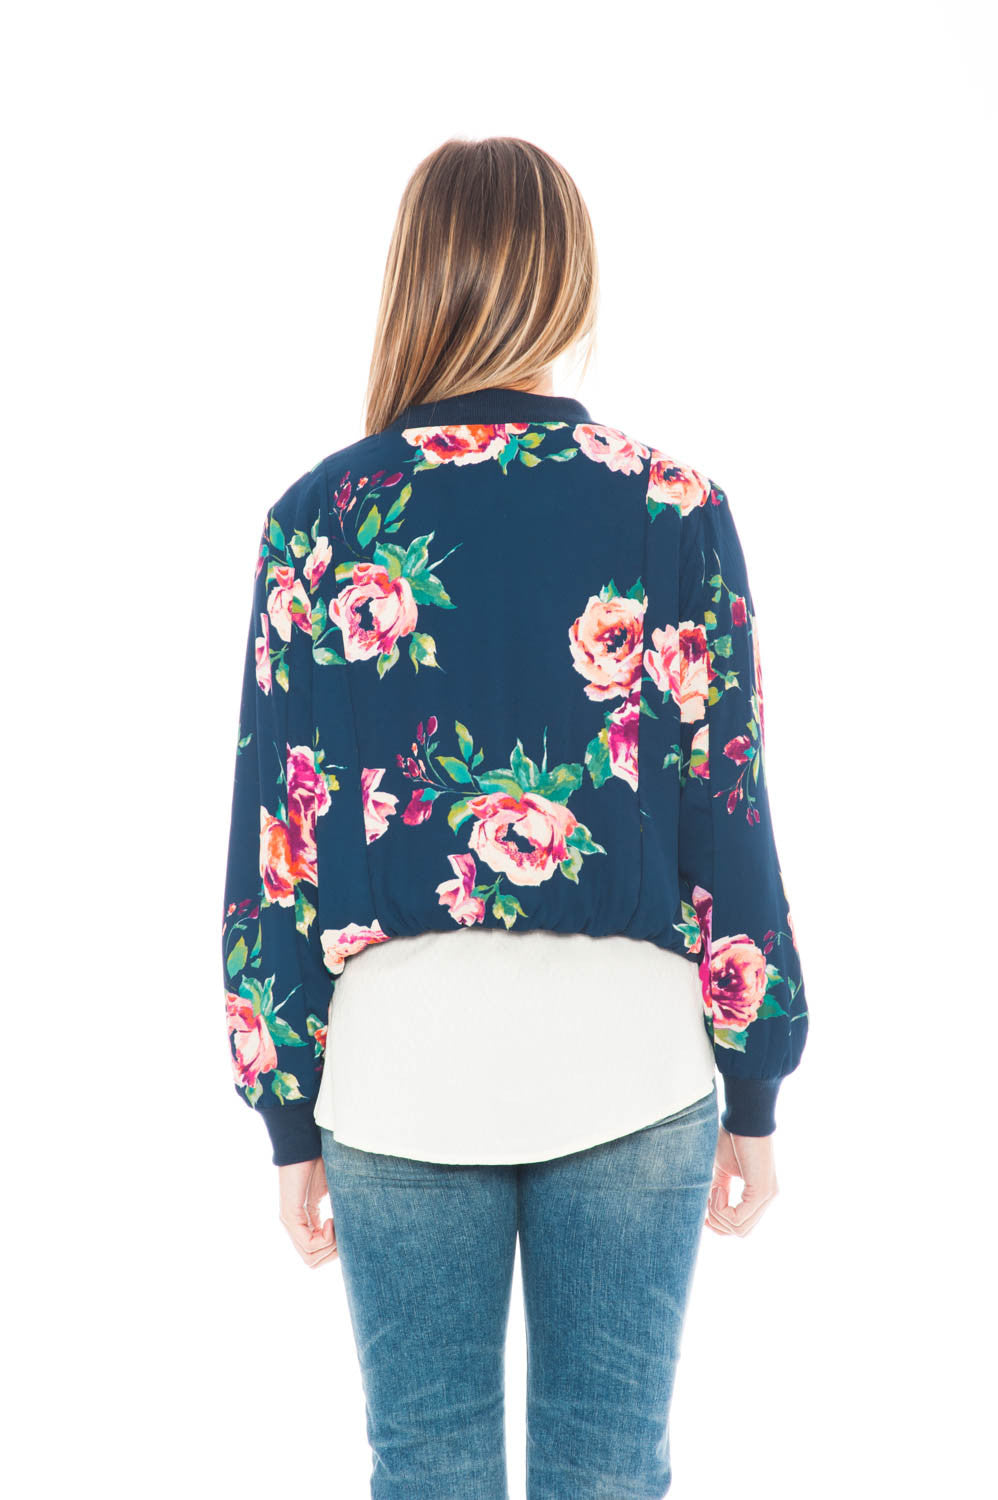 Jacket - Floral Bomber zip up by Everly